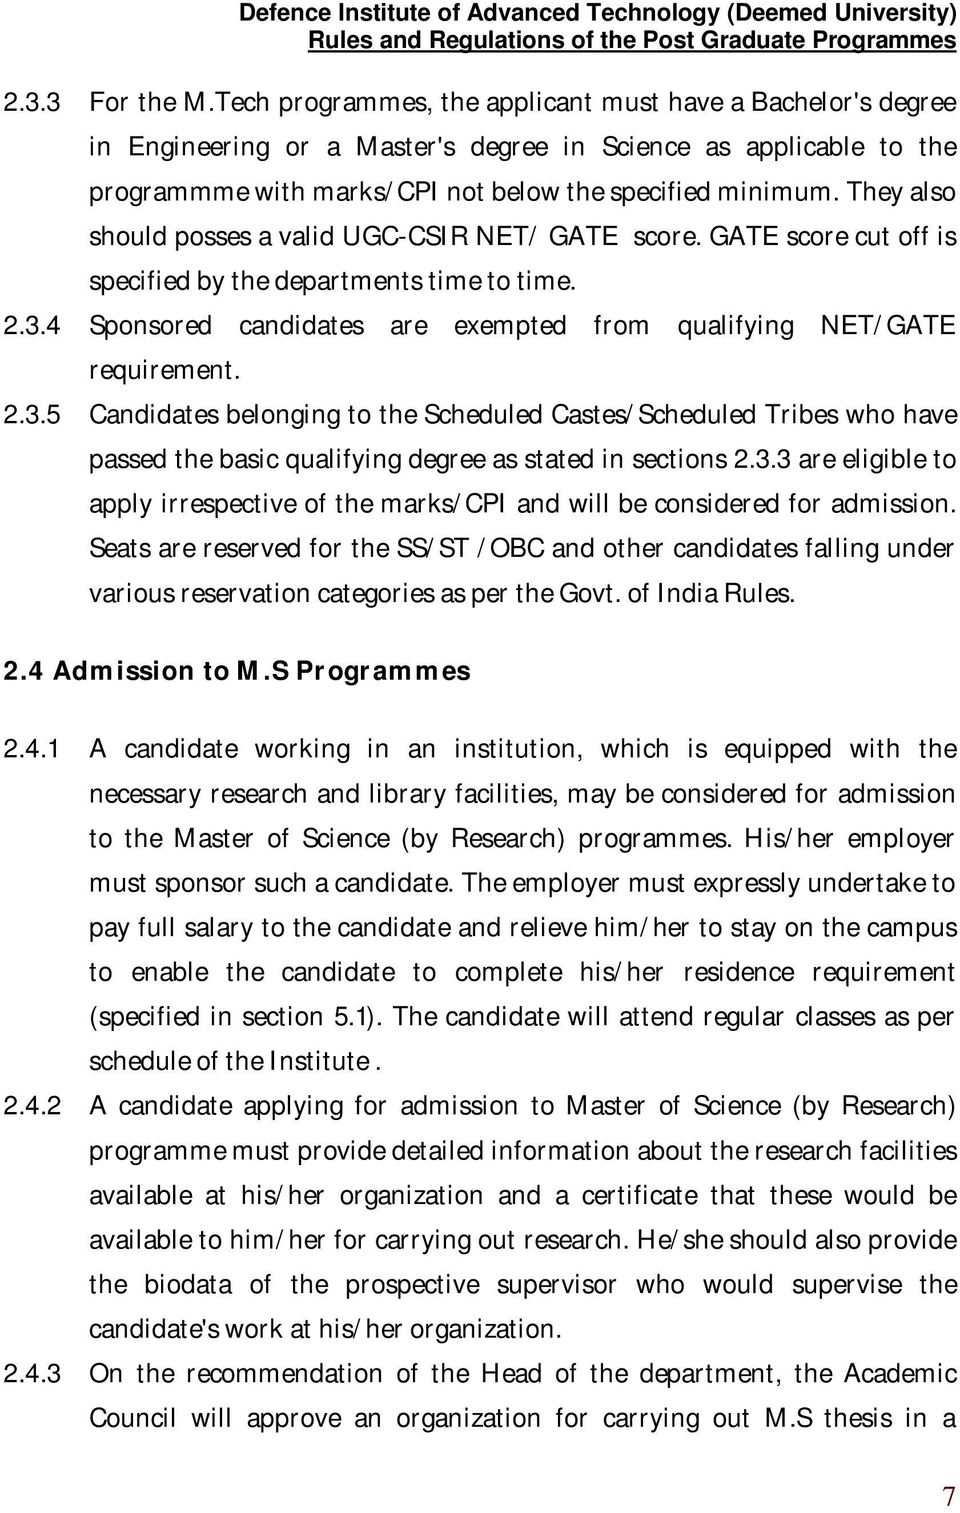 They also should posses a valid UGC-CSIR NET/ GATE score. GATE score cut off is specified by the departments time to time. 2.3.4 Sponsored candidates are exempted from qualifying NET/GATE requirement.